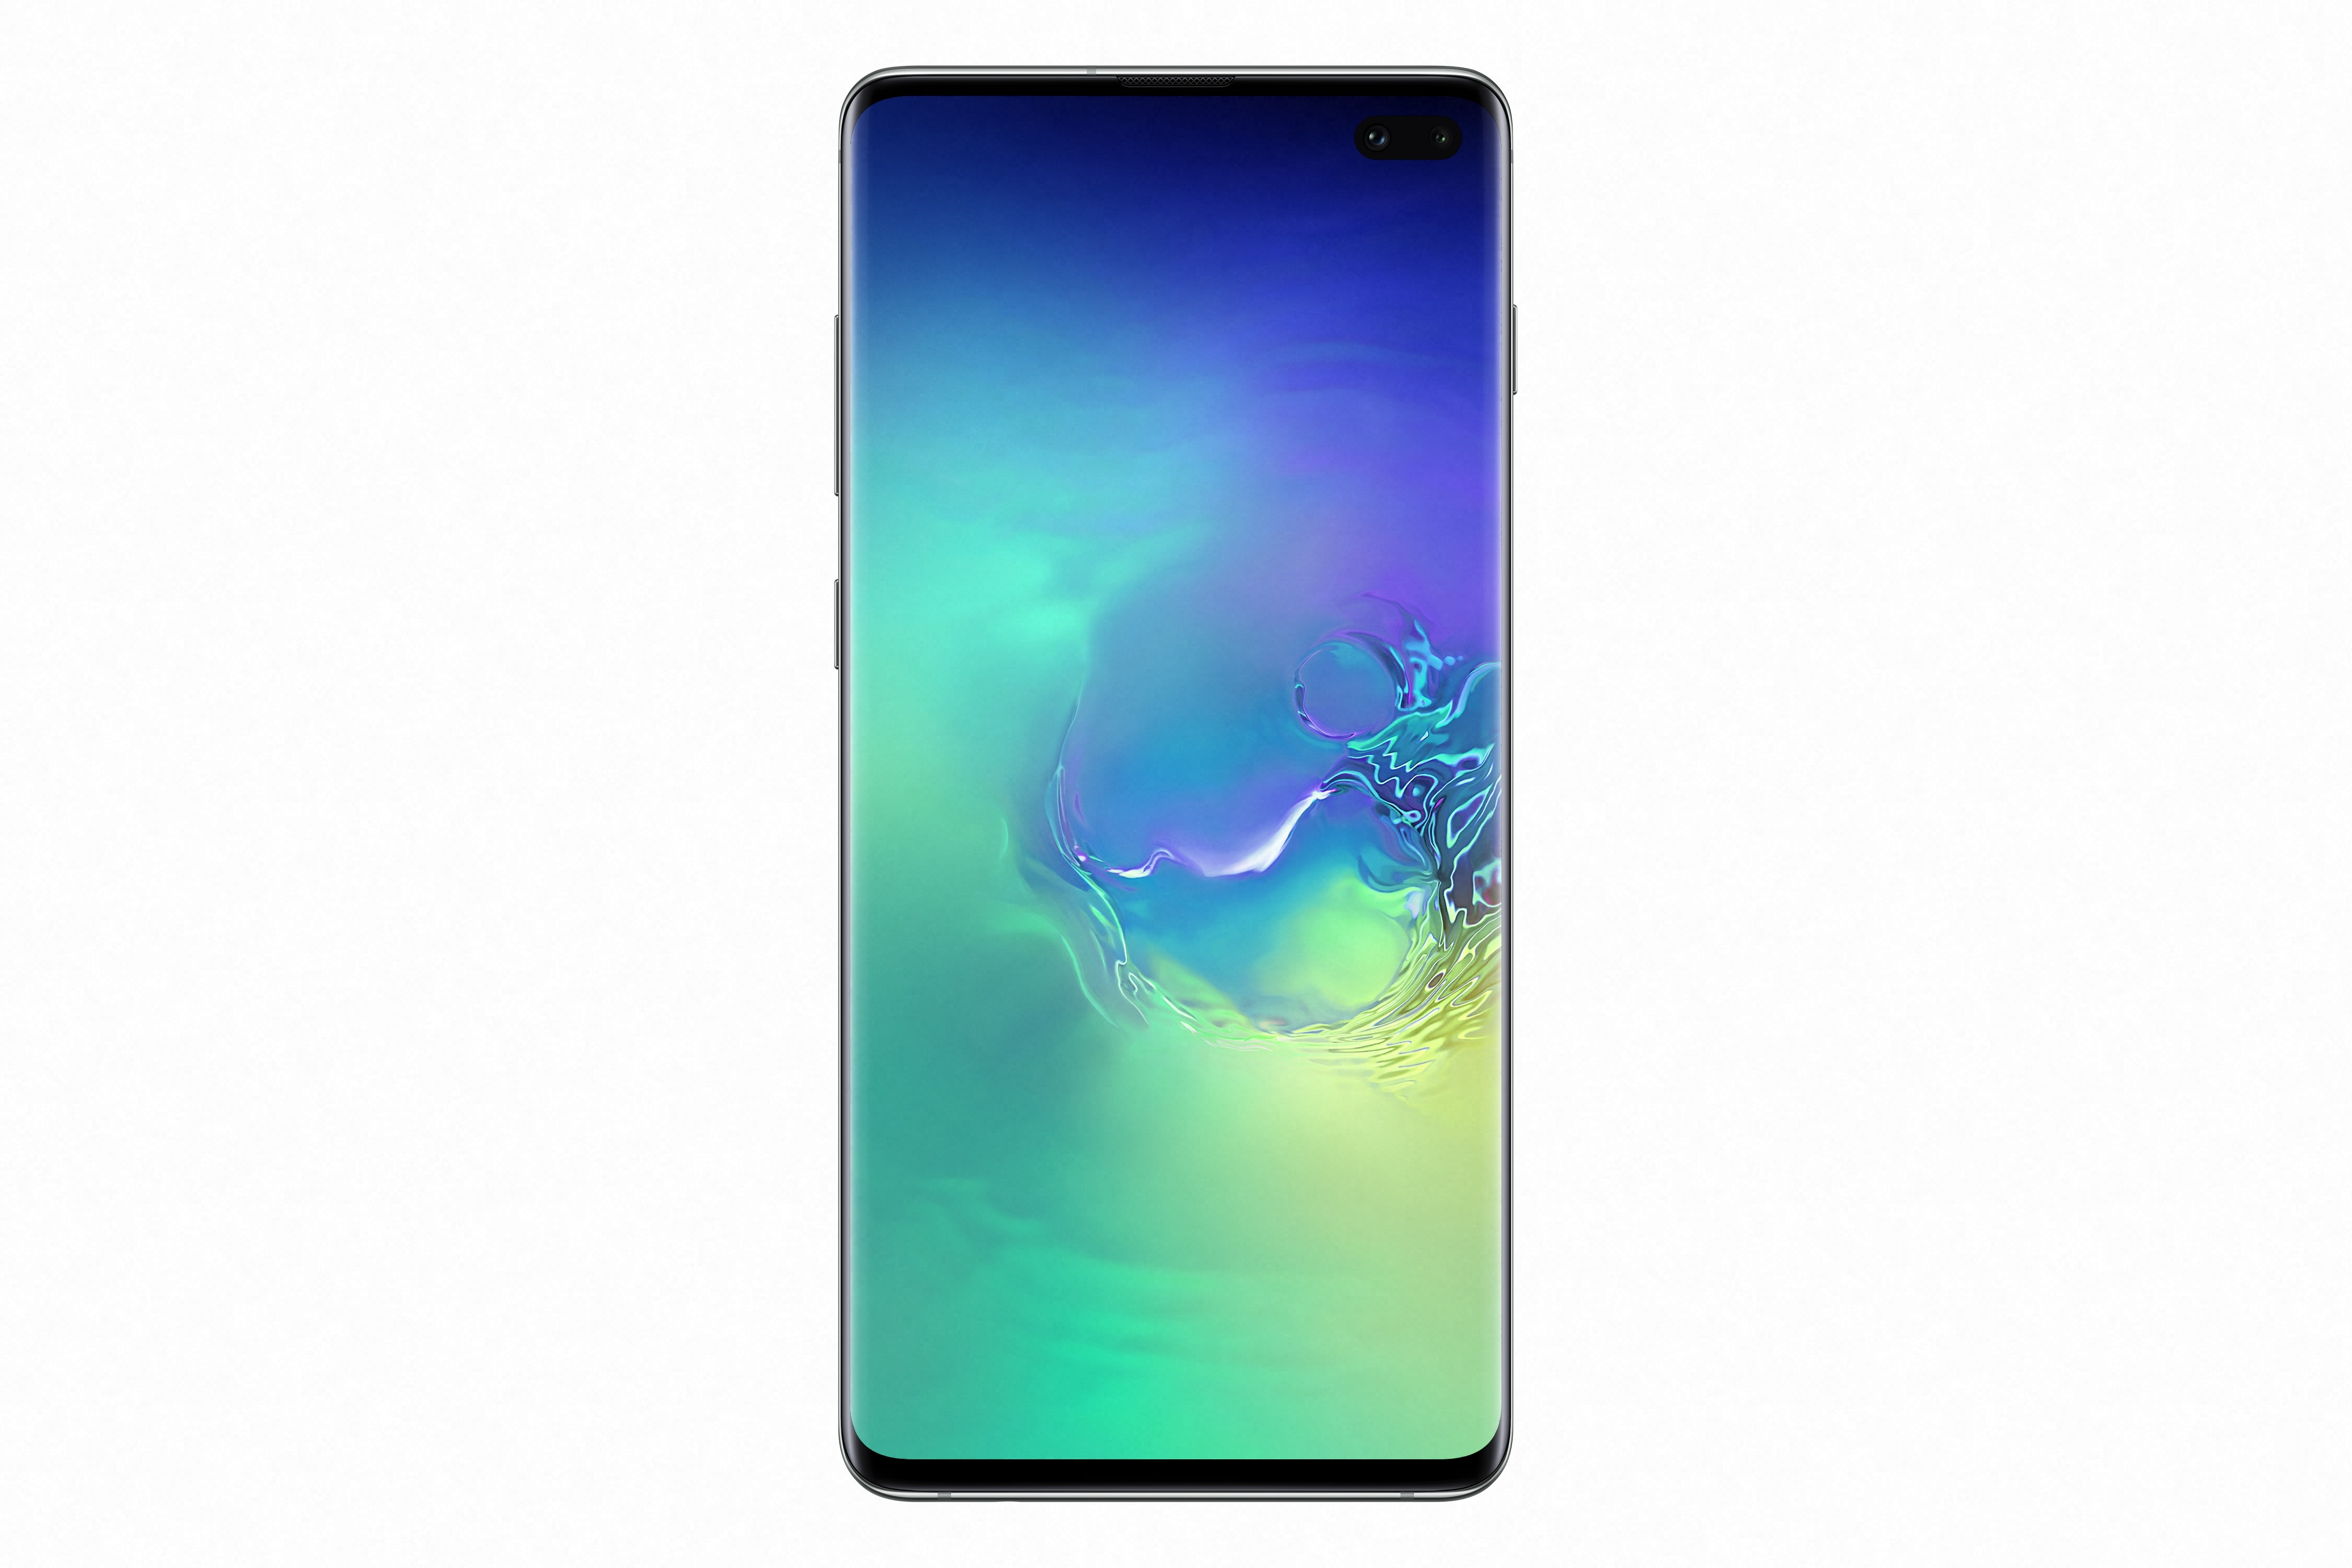 Galaxy S10 front